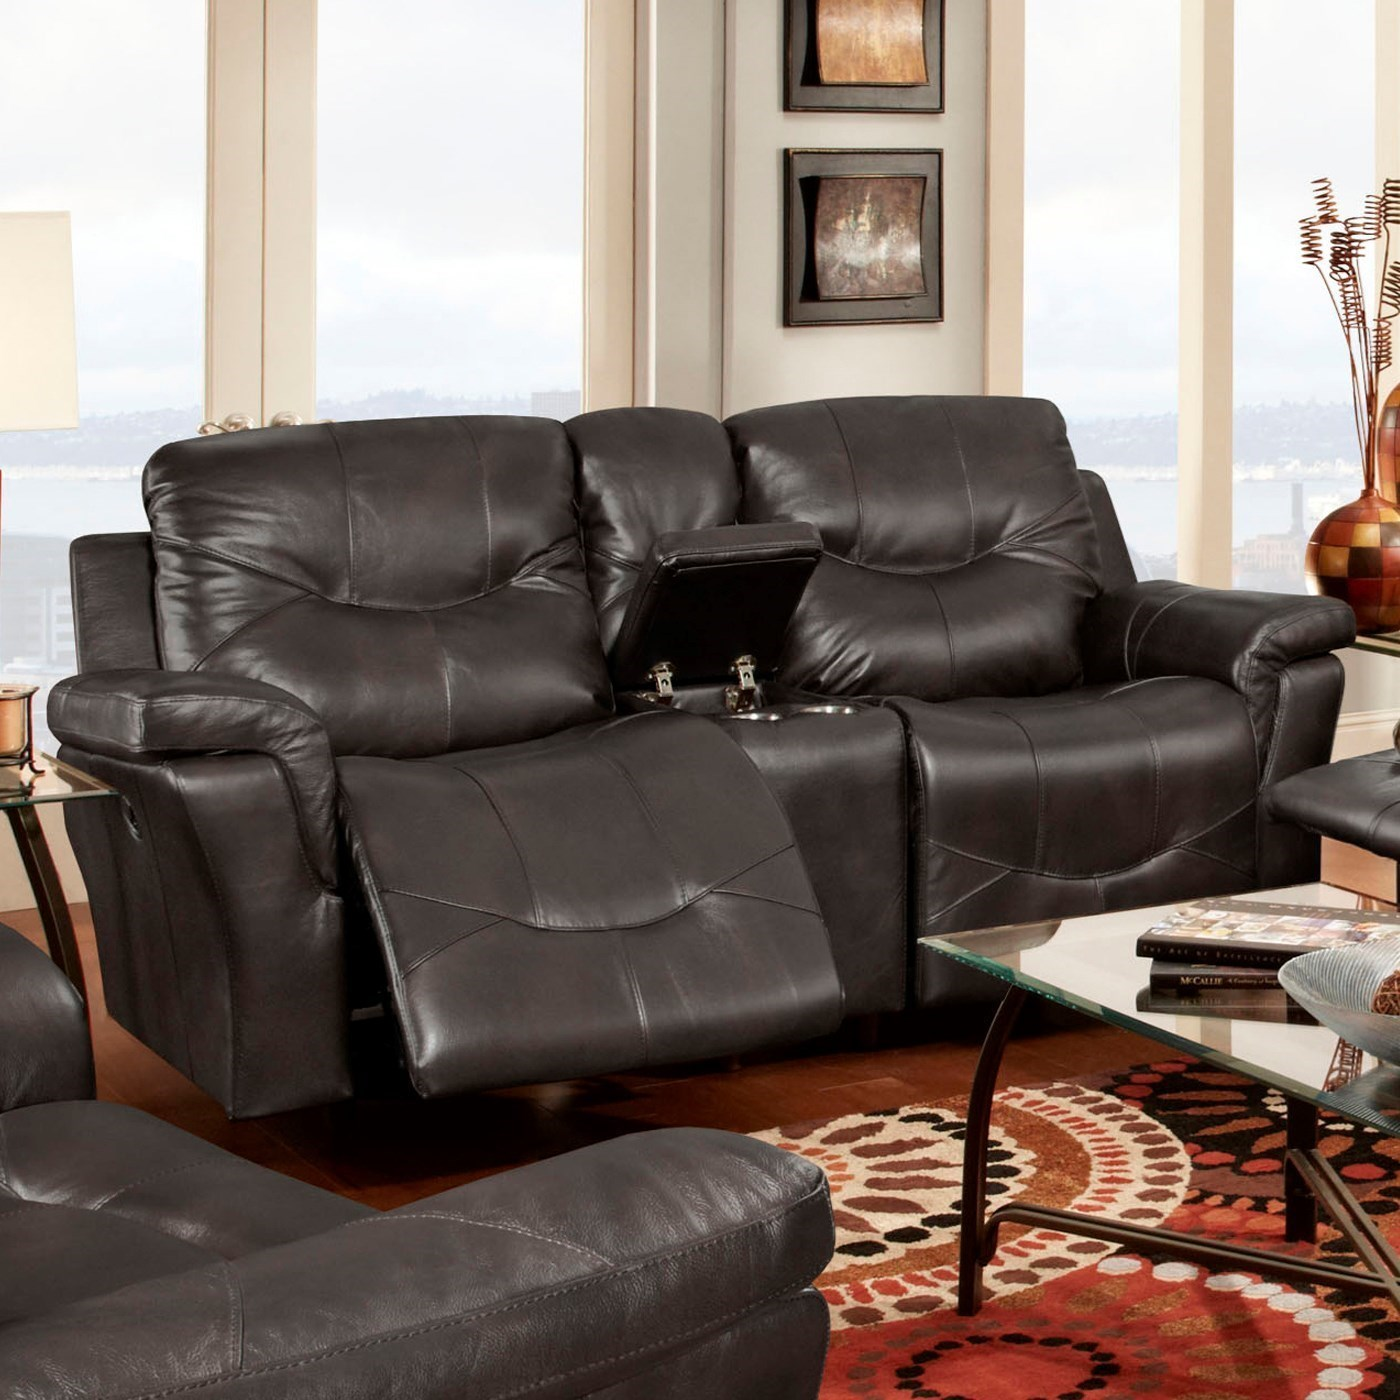 Franklin Milano Power Reclining Console Loveseat - Furniture and ApplianceMart - Reclining Love Seat  sc 1 st  Furniture and ApplianceMart & Franklin Milano Power Reclining Console Loveseat - Furniture and ... islam-shia.org